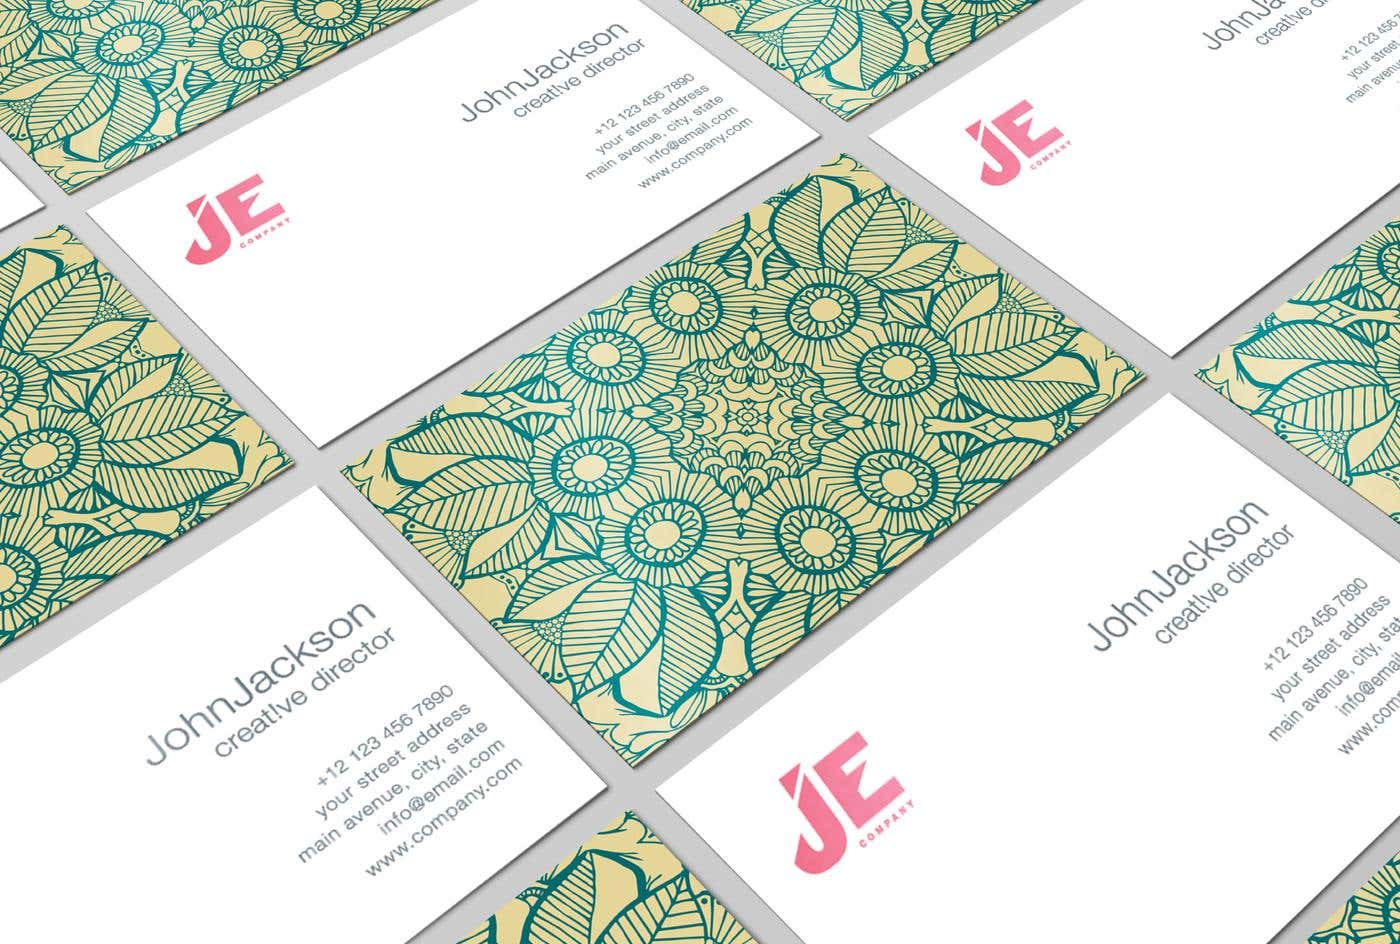 60 Modern Business Cards To Make A Killer First Impression ...